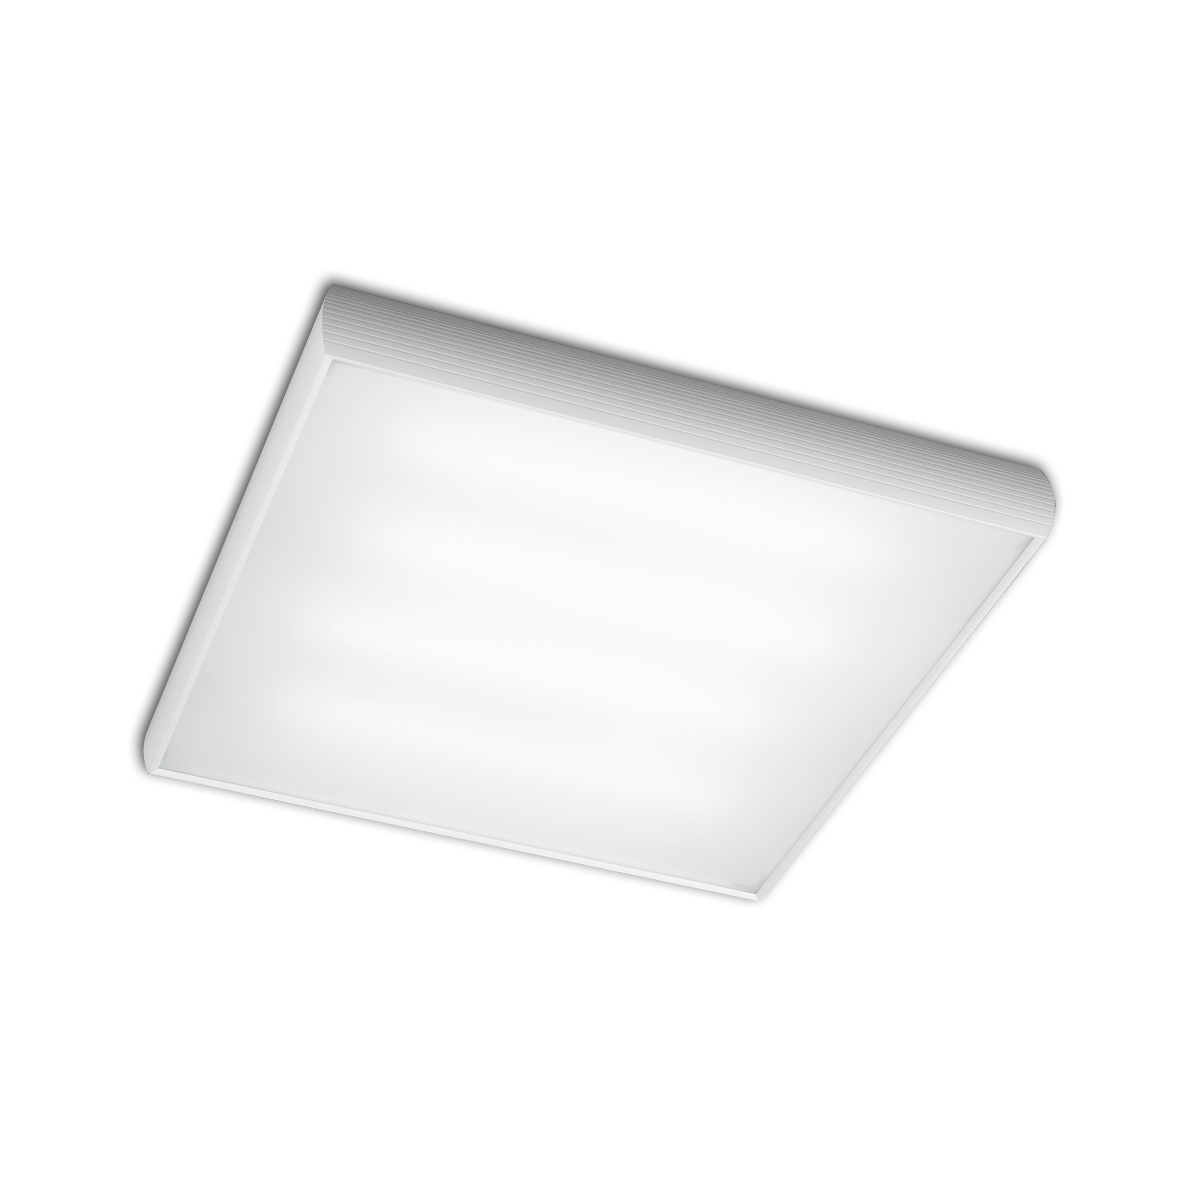 Aluminium ceiling lamp 4xE27 20w white matt